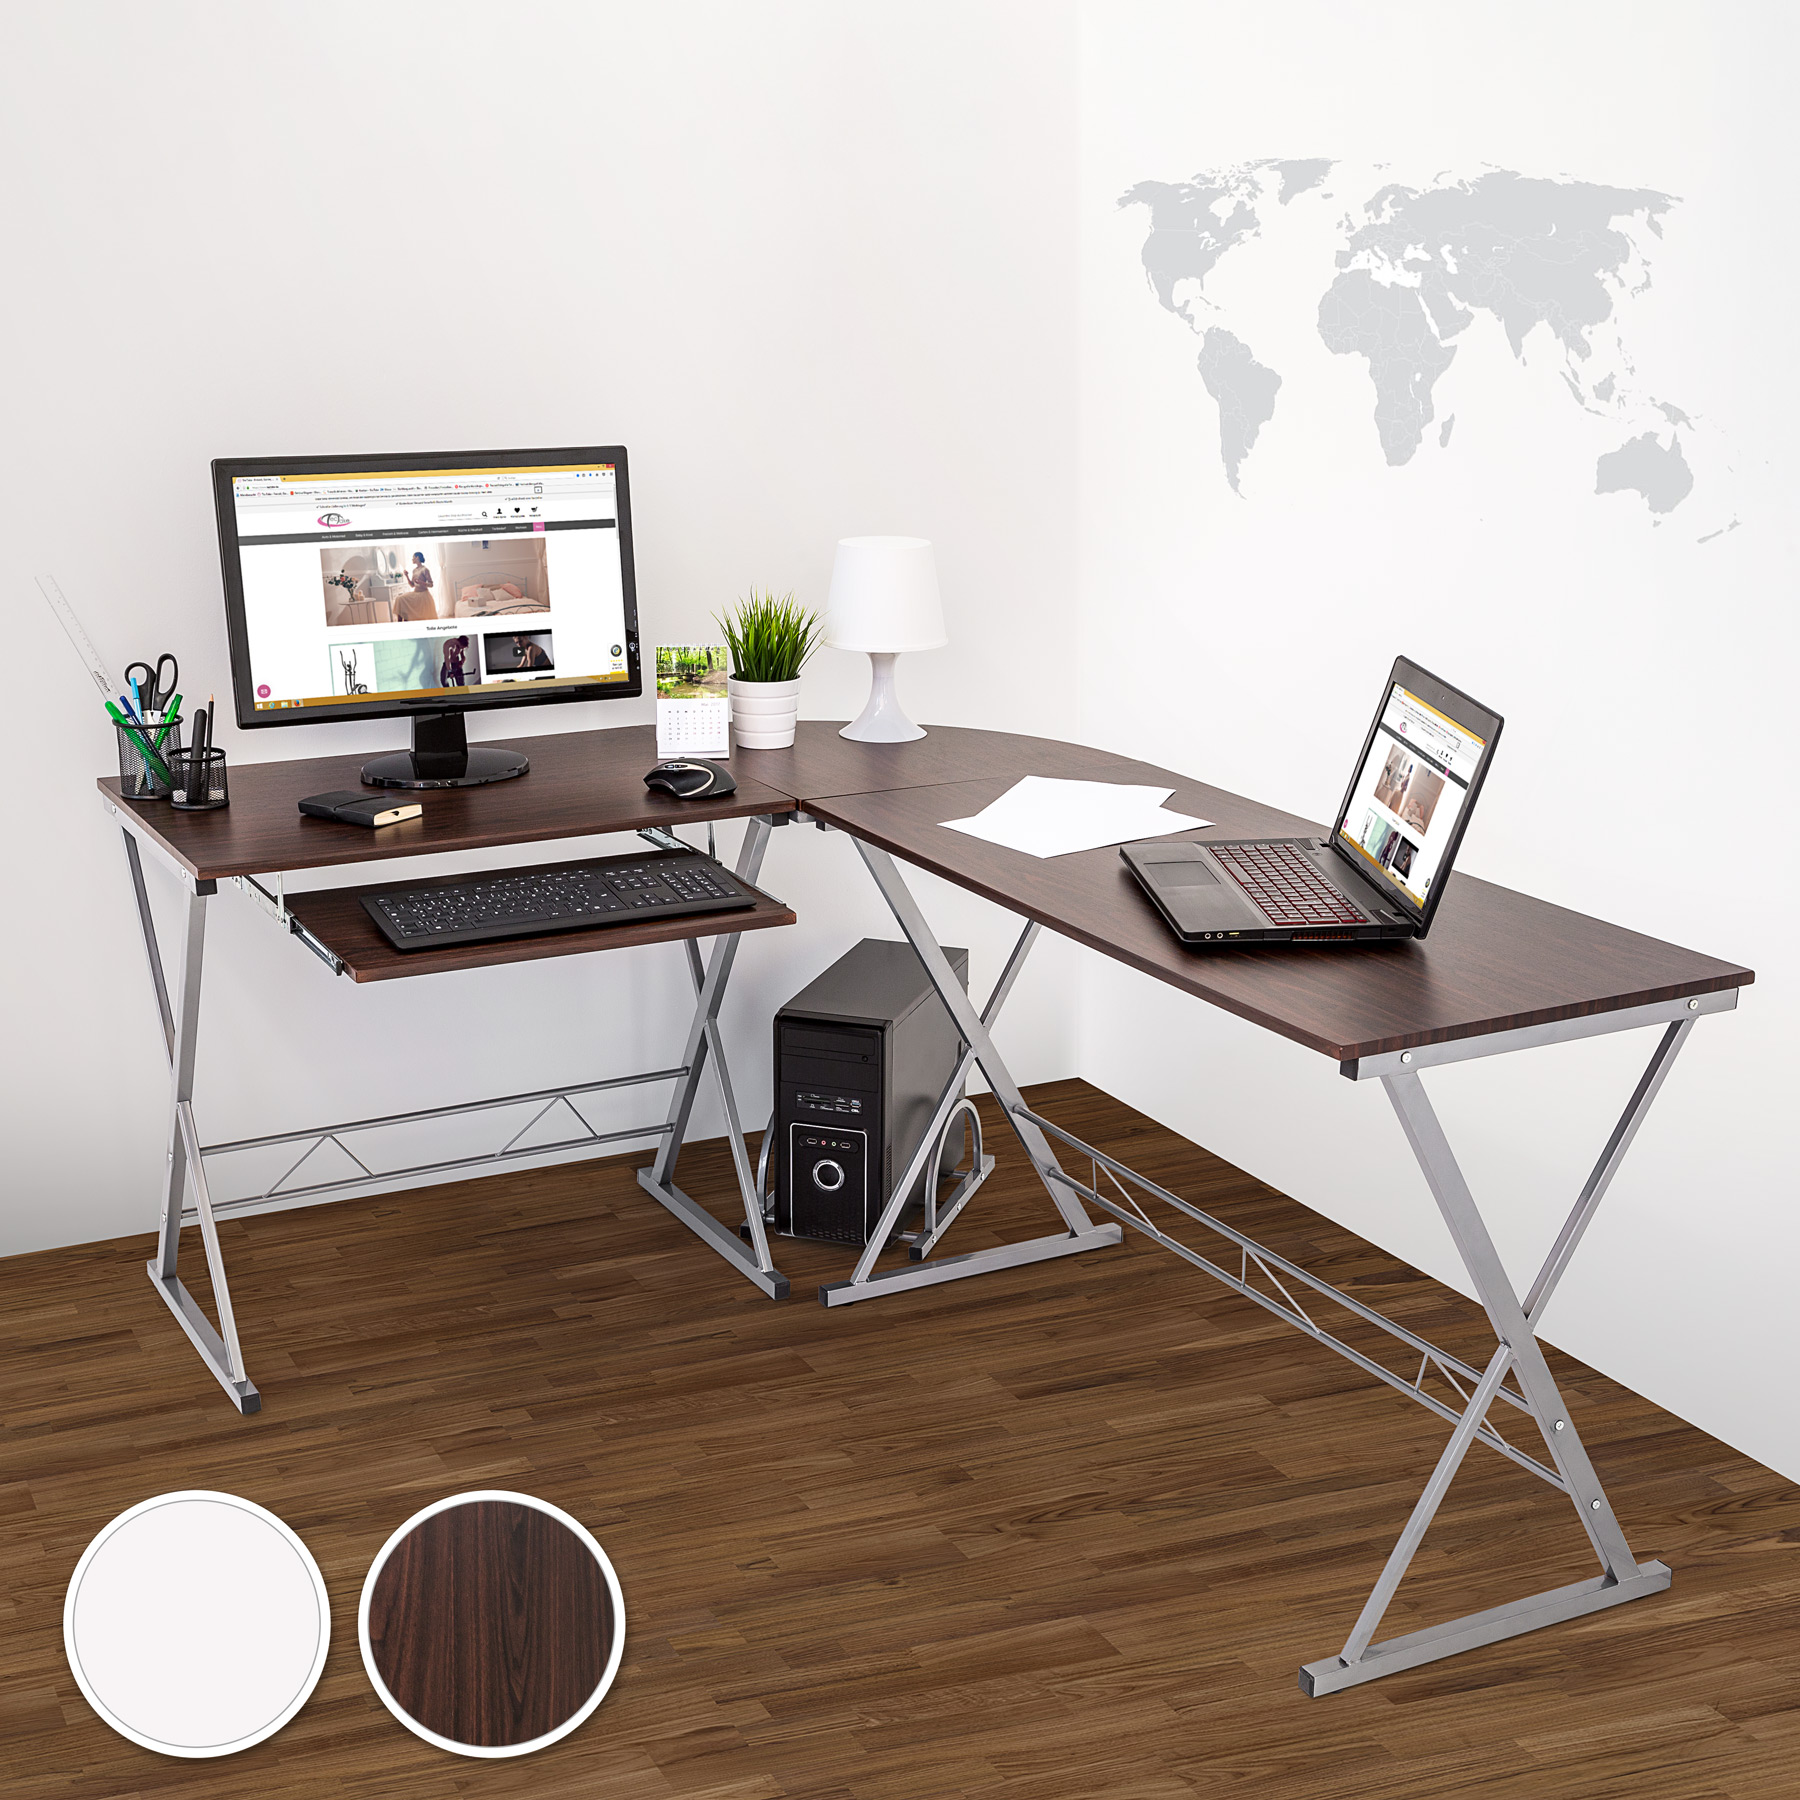 bureau table ordinateur en coin meuble d 39 angle pc poste de travail blanc. Black Bedroom Furniture Sets. Home Design Ideas